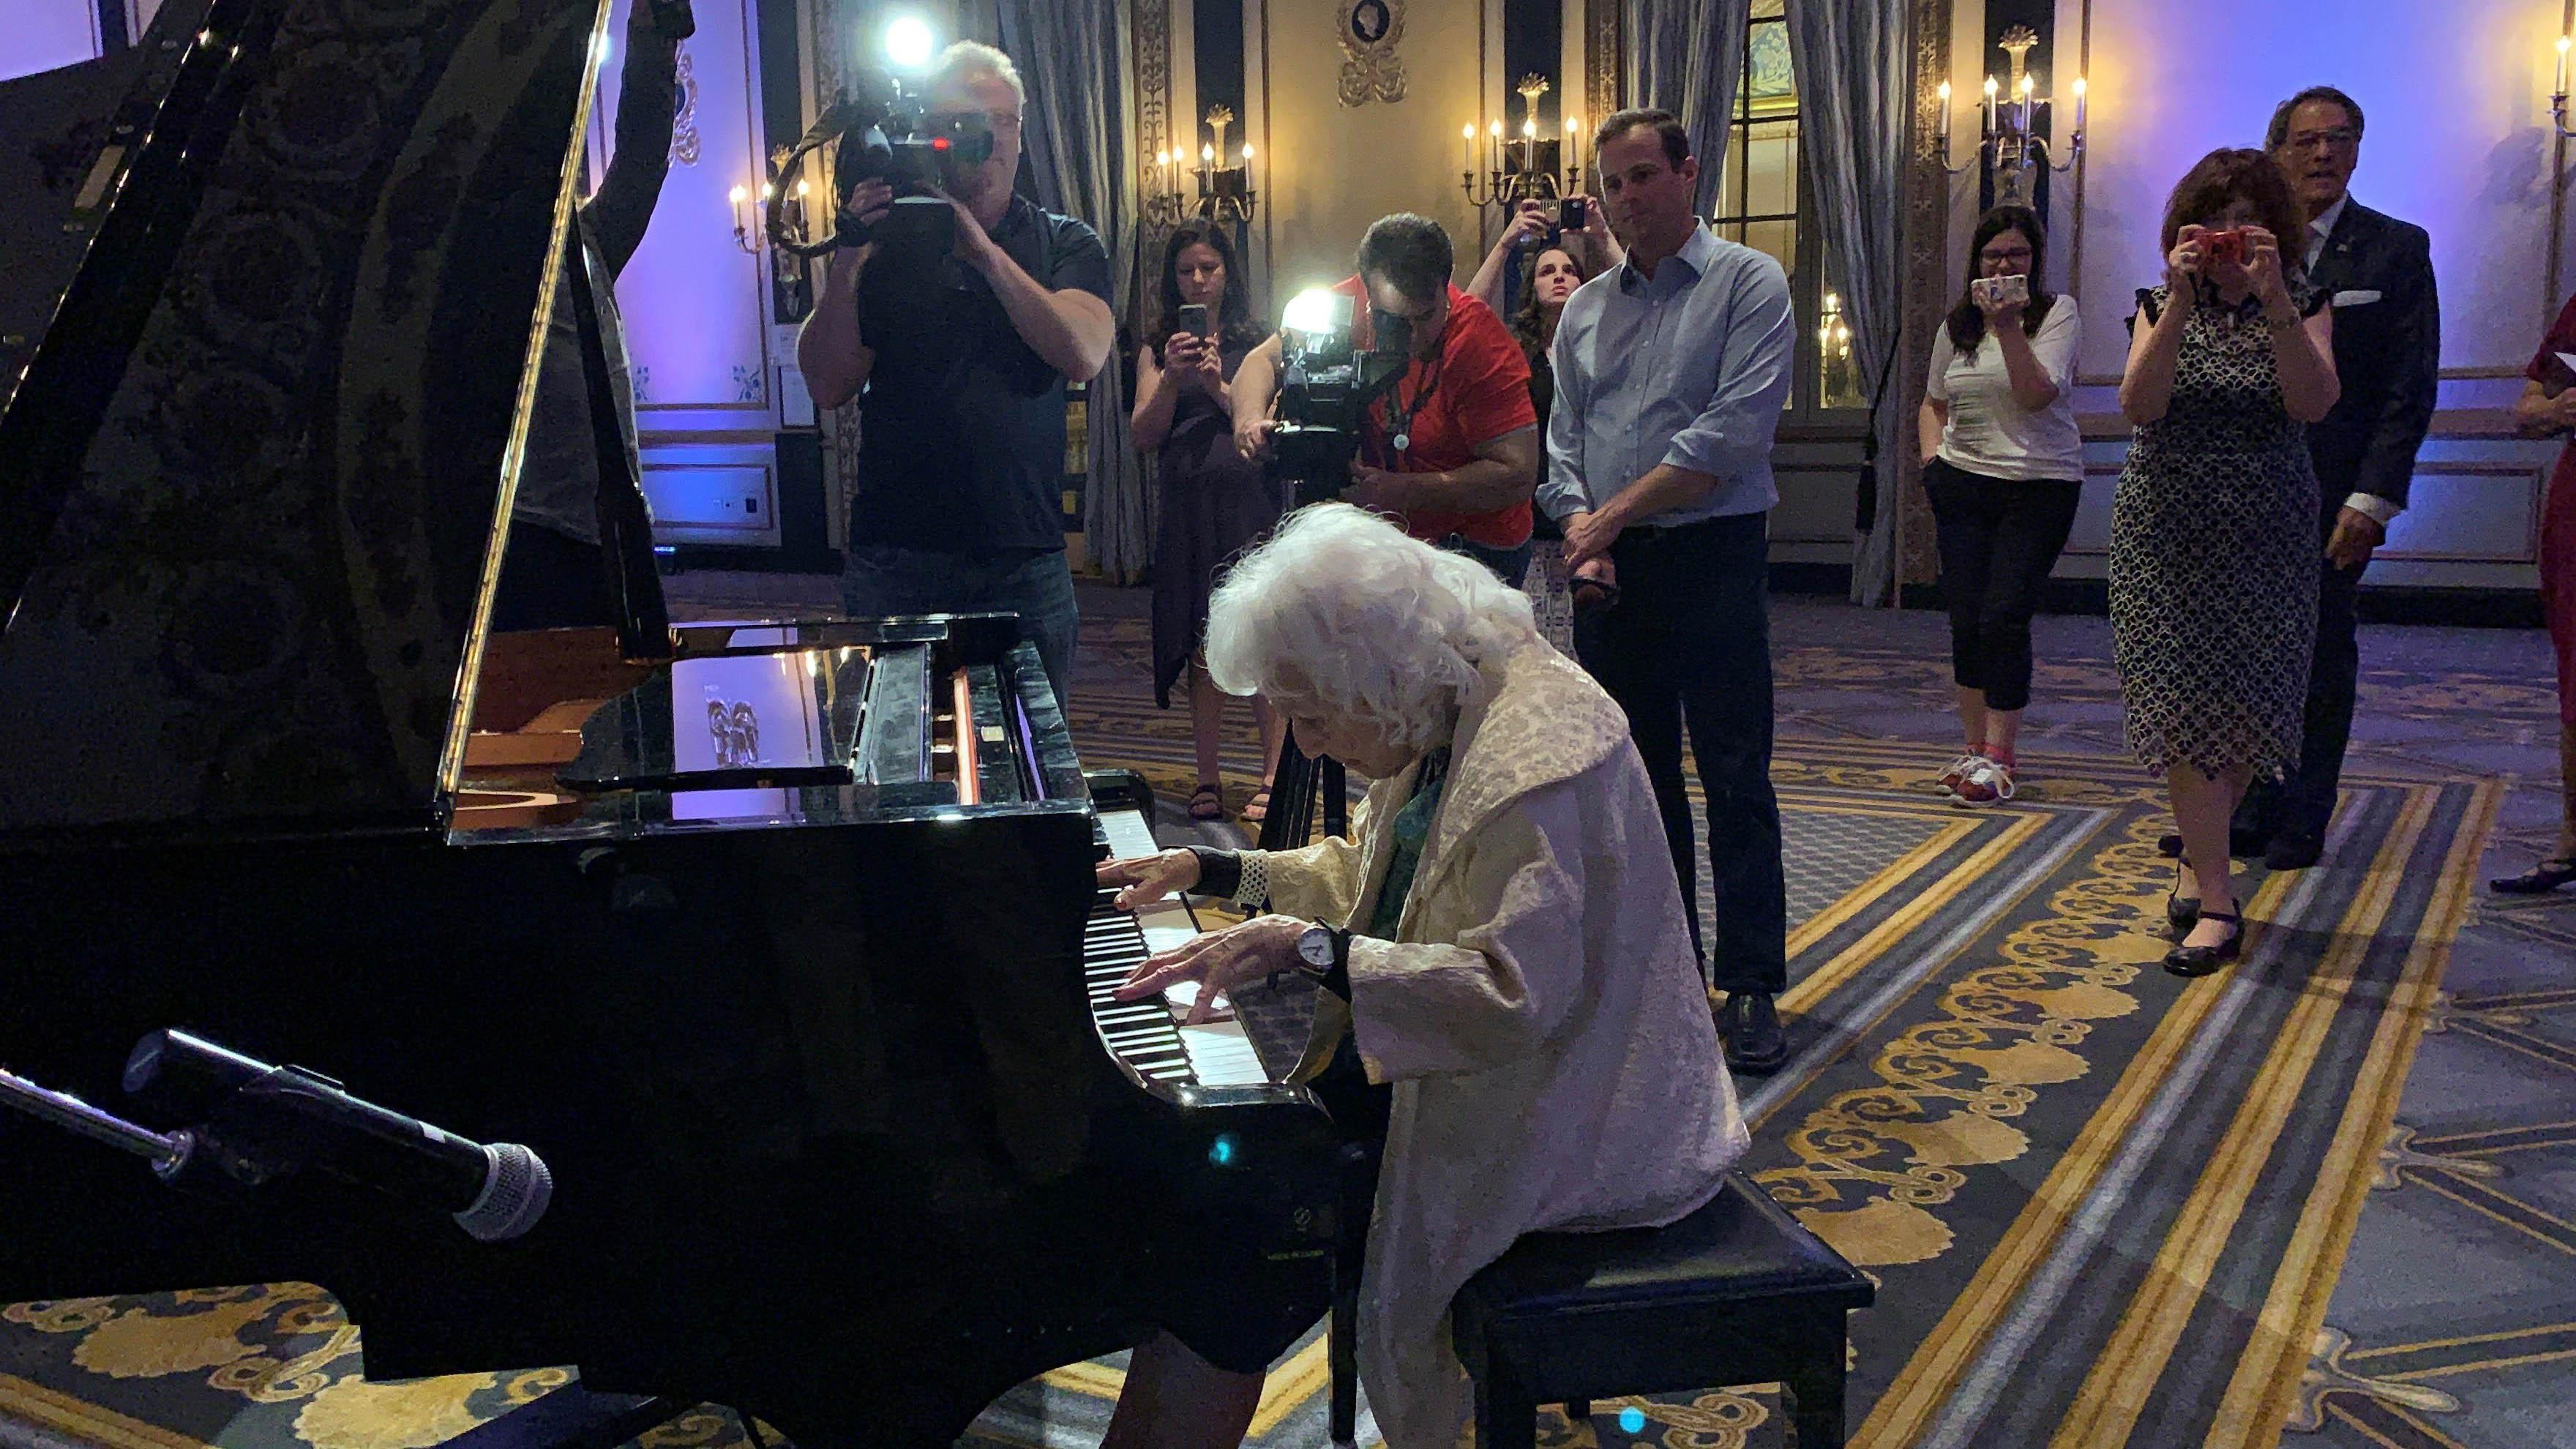 Dorothy Olson Pauletti, back at the piano in the Empire Room.